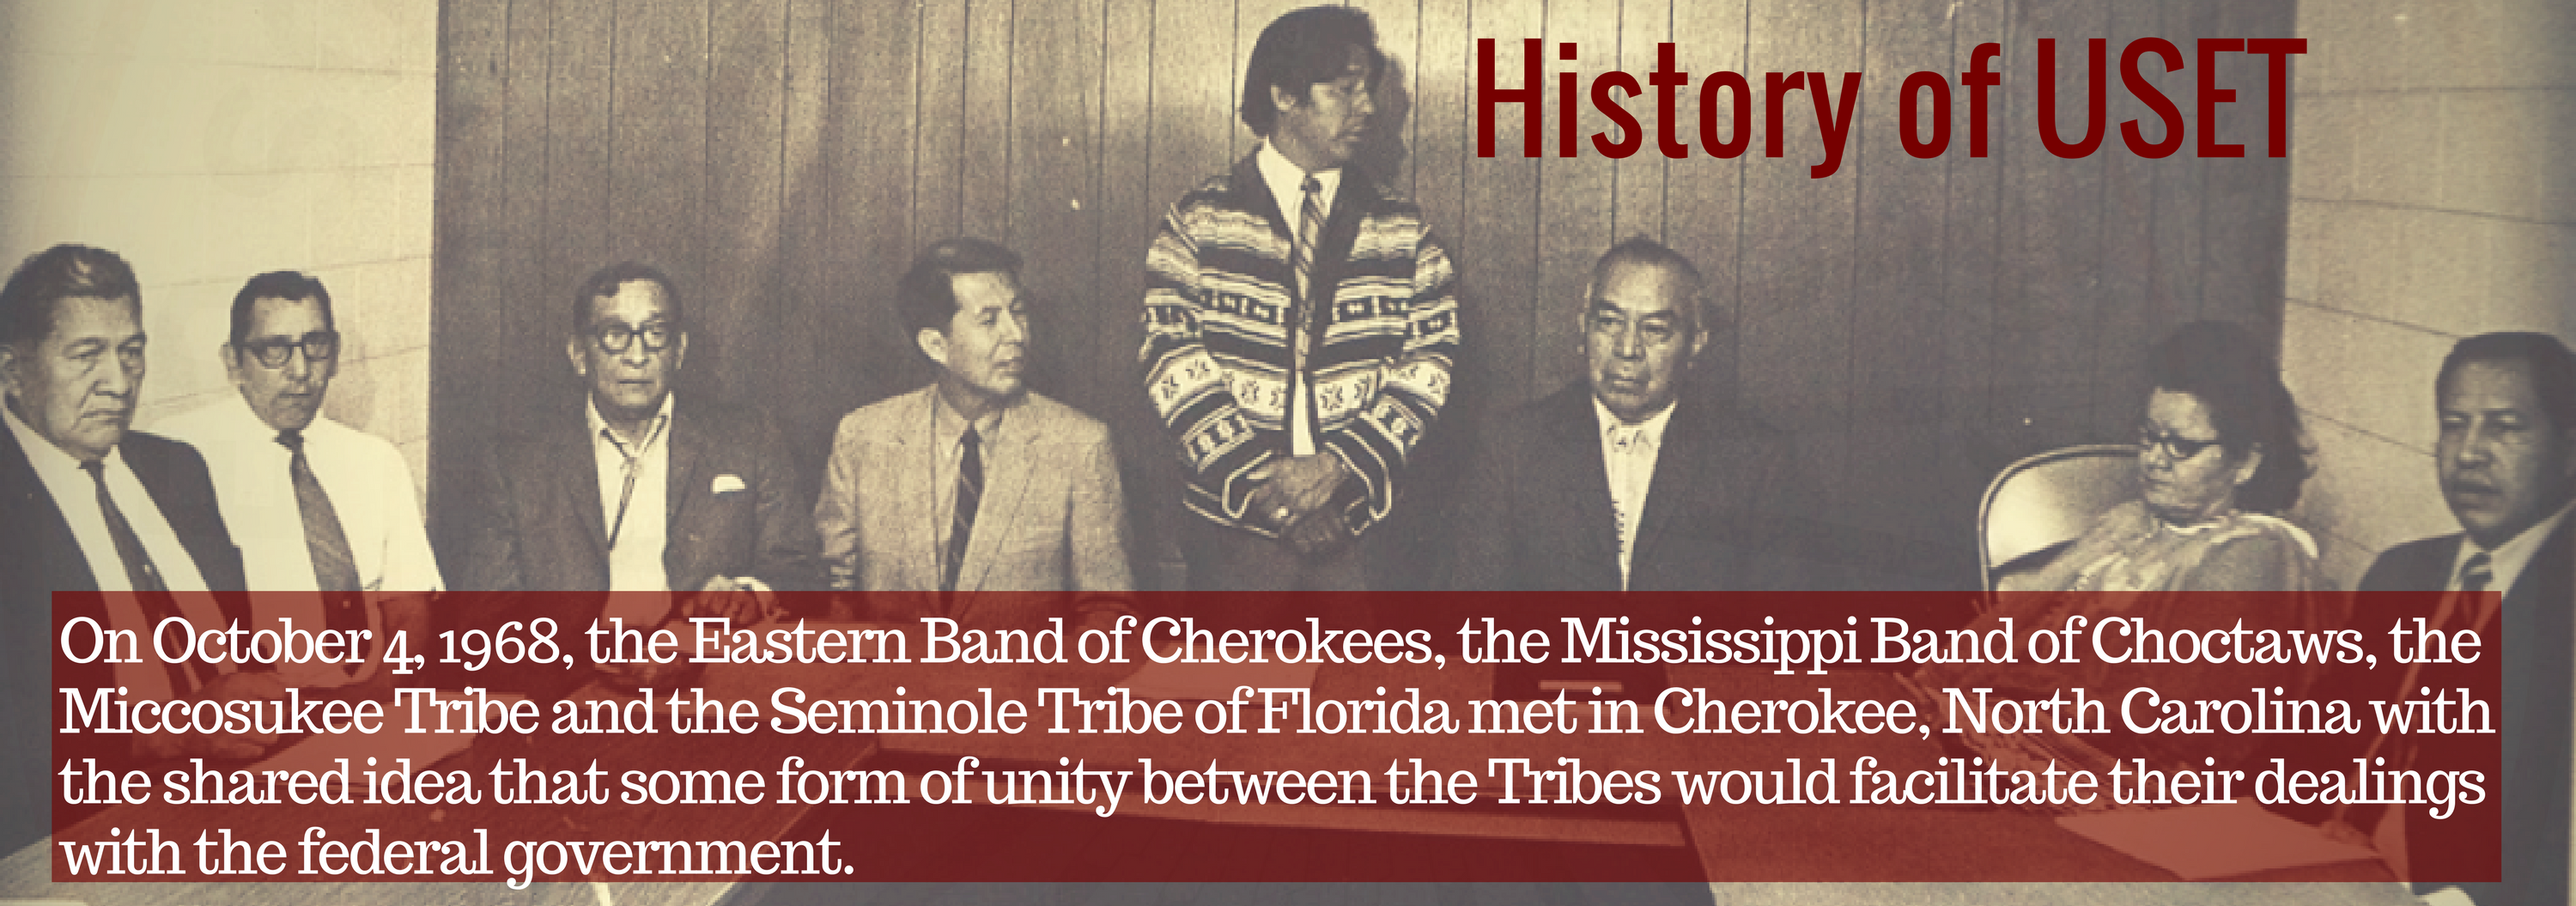 About USET | United South & Eastern Tribes